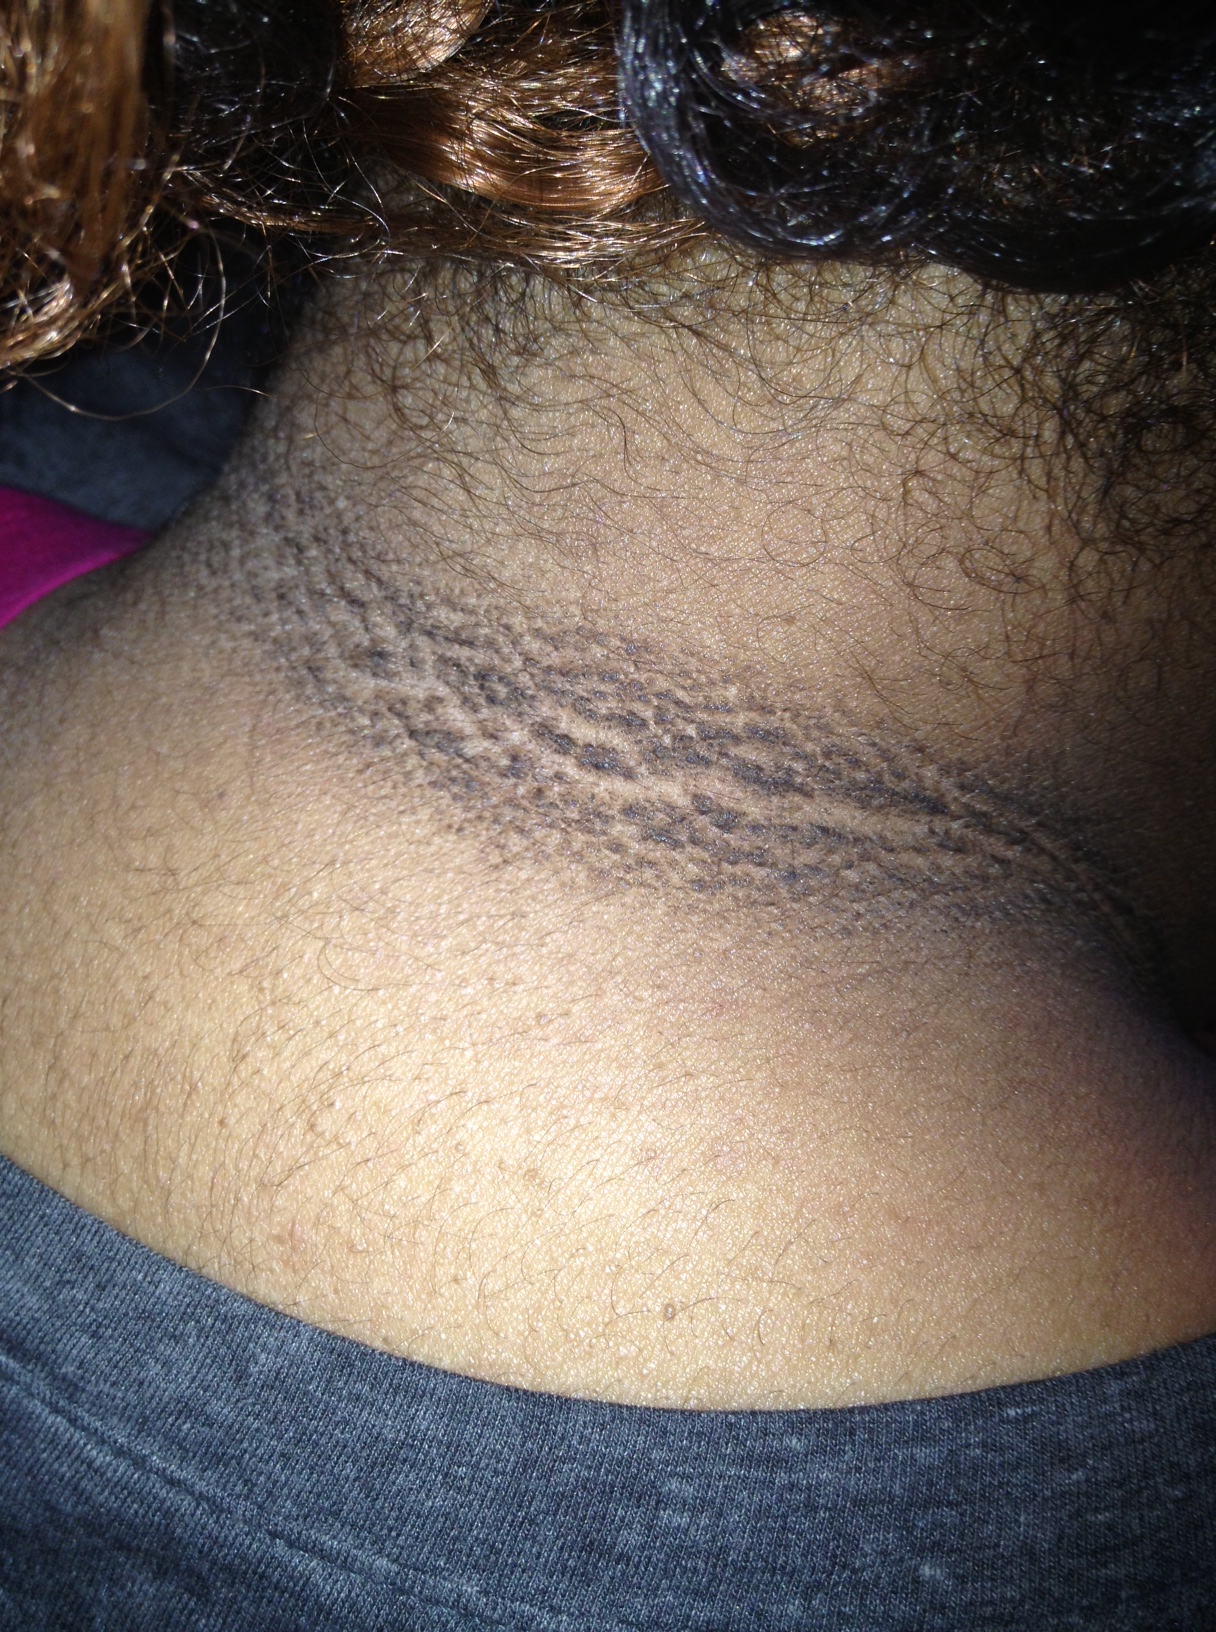 Acanthosis nigricans of the neck